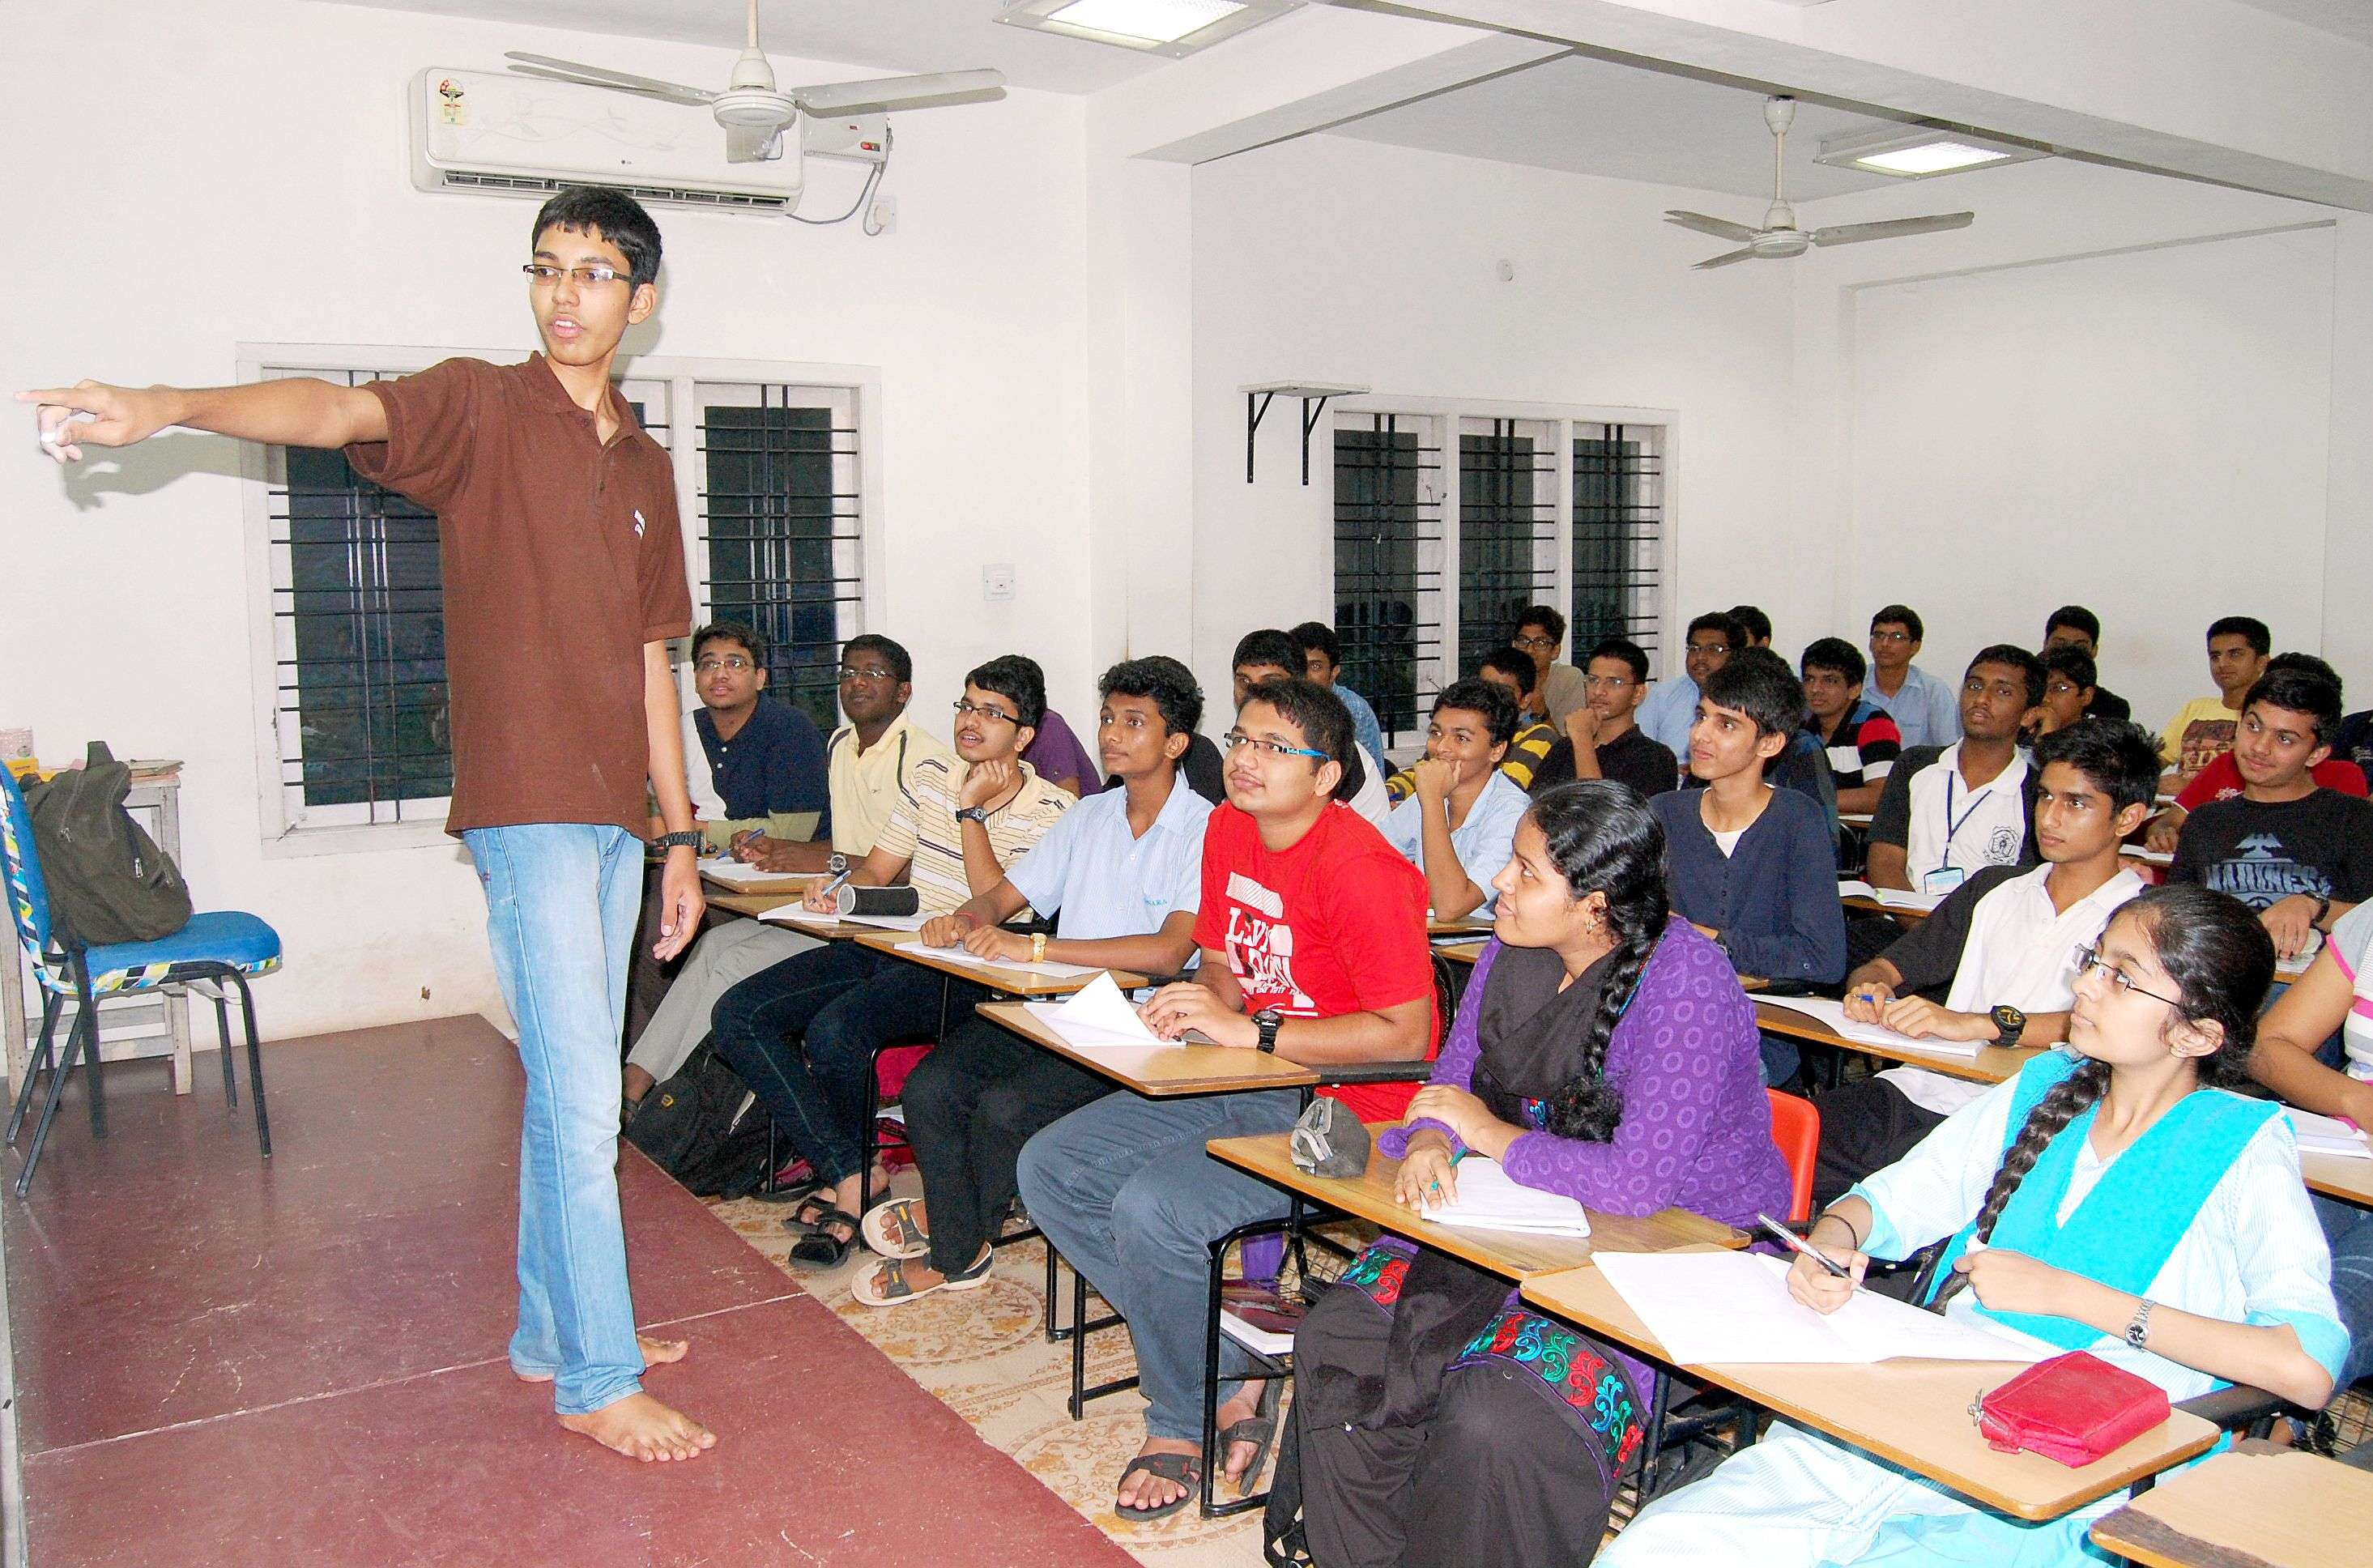 All you need to know about free support for civil services offered in Kerala to EWS students